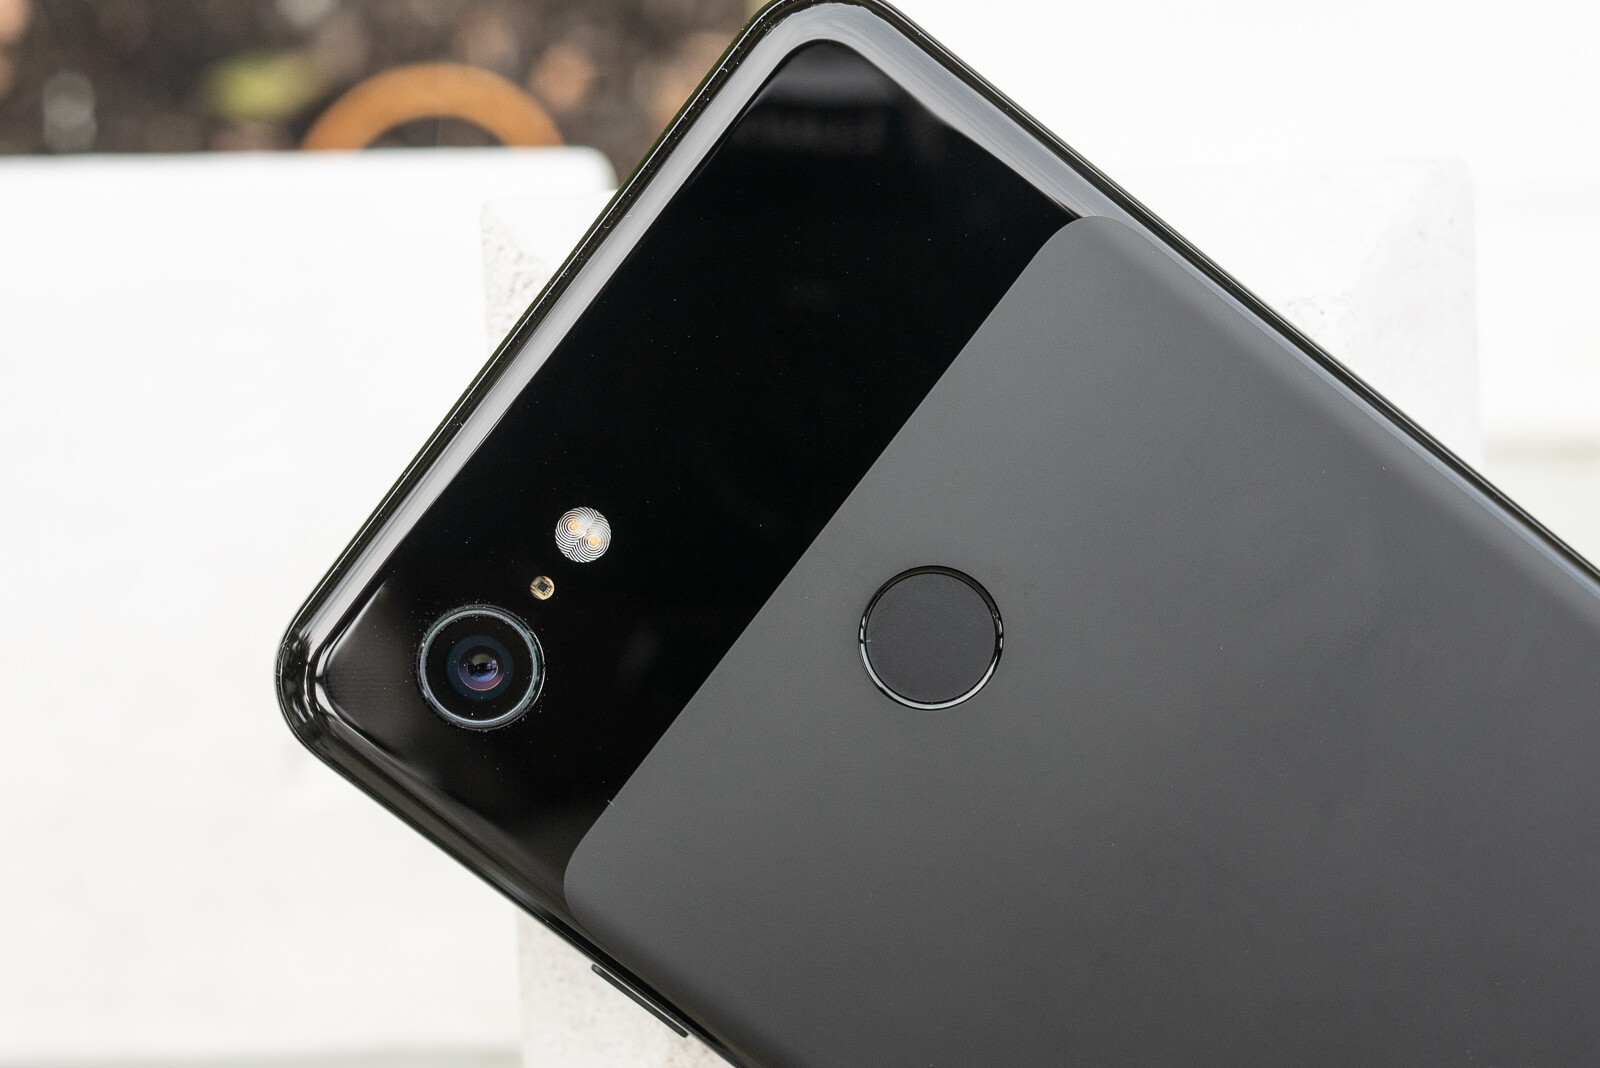 The Google Pixel 3 and Pixel 3a lineups could be coming to Sprint